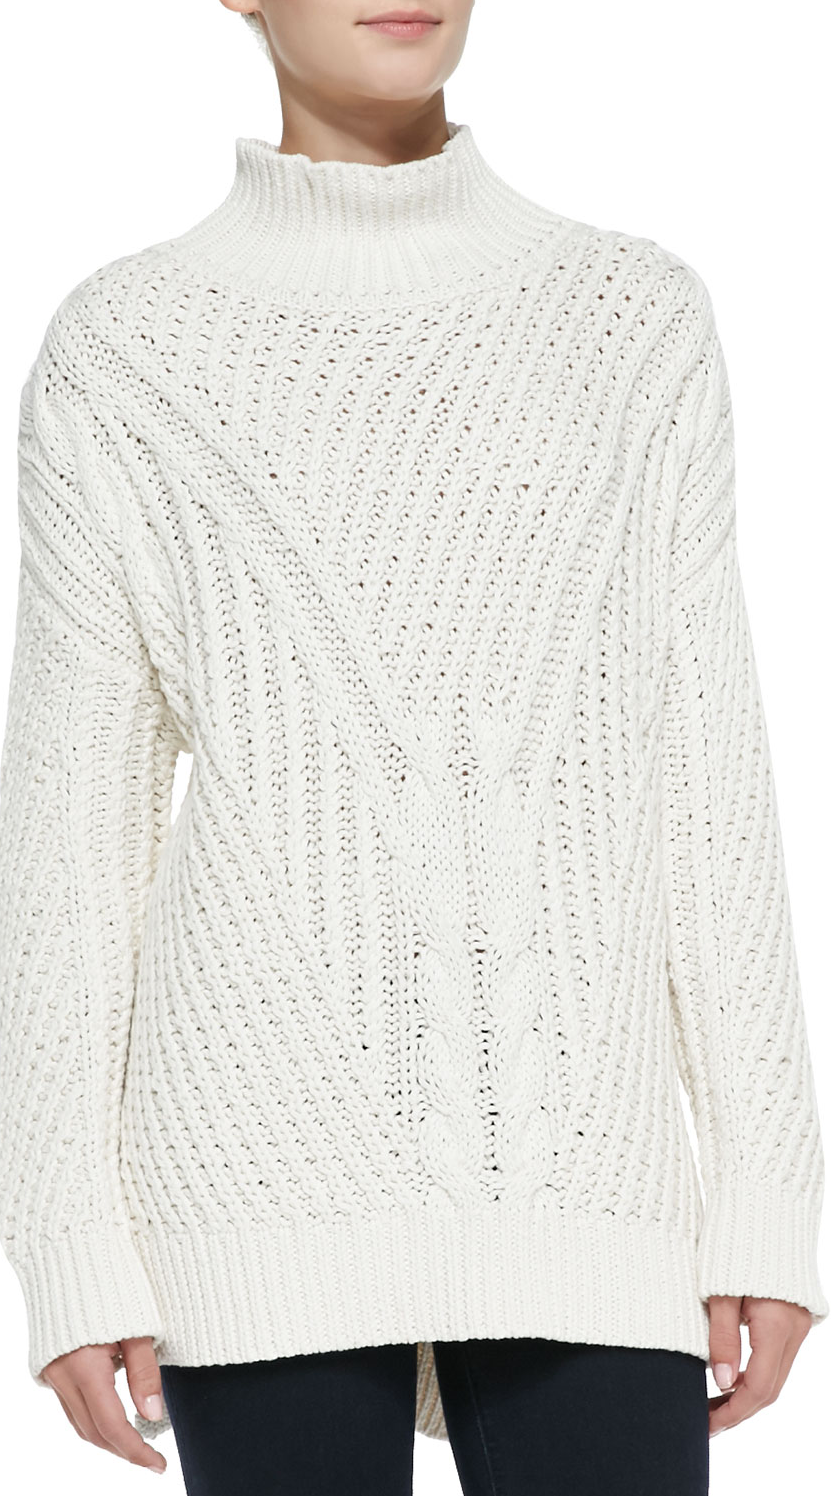 525 America Cable-Knit Mock Turtleneck High-Low Sweater, Cream ...